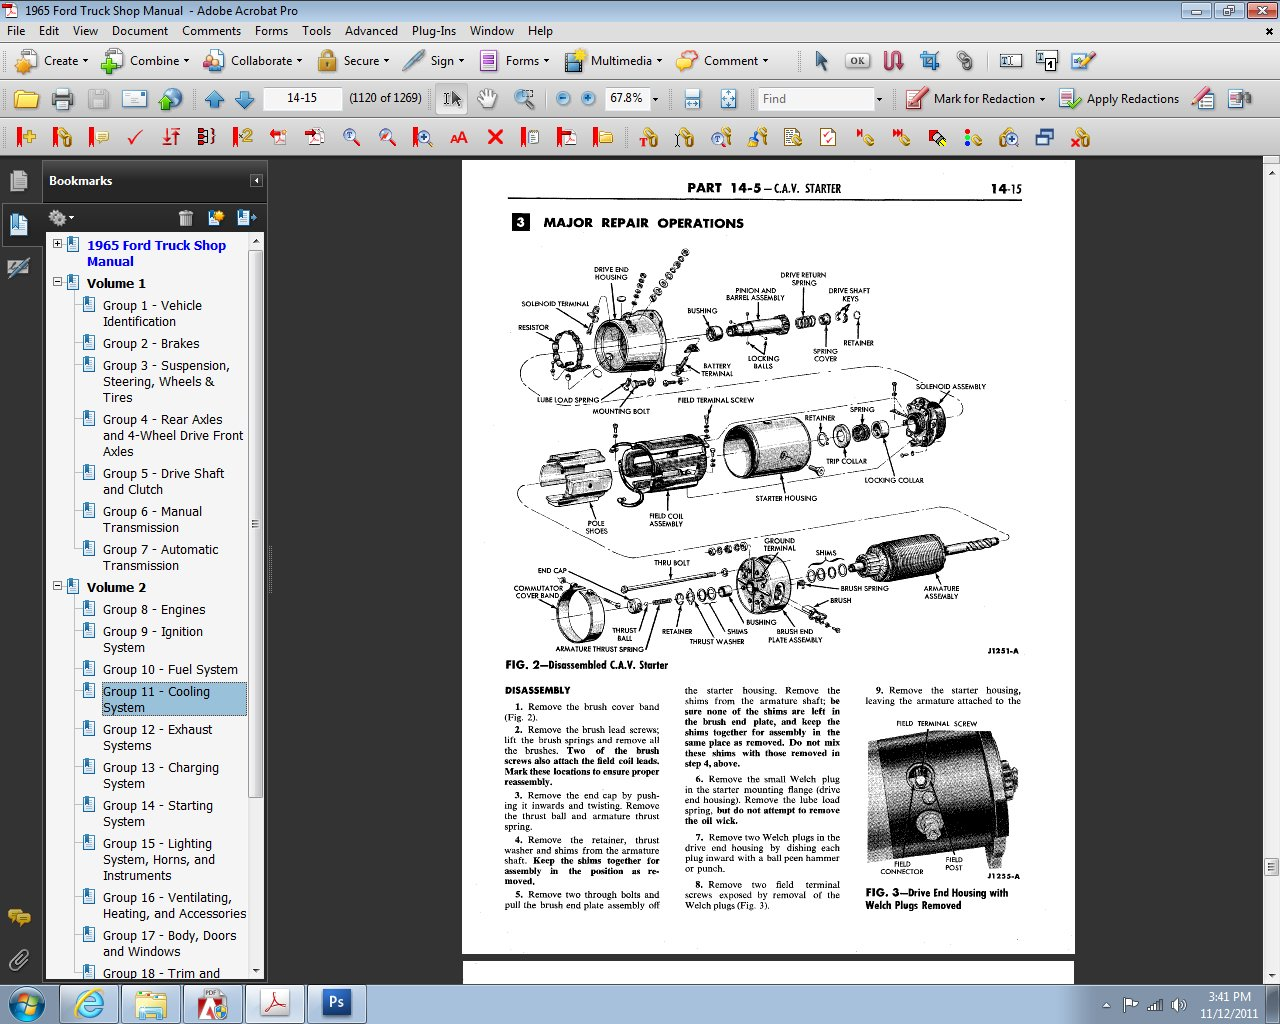 1965 Ford Truck Shop Manual: Ford Motor Company, David E. LeBlanc:  9781603710732: Amazon.com: Books